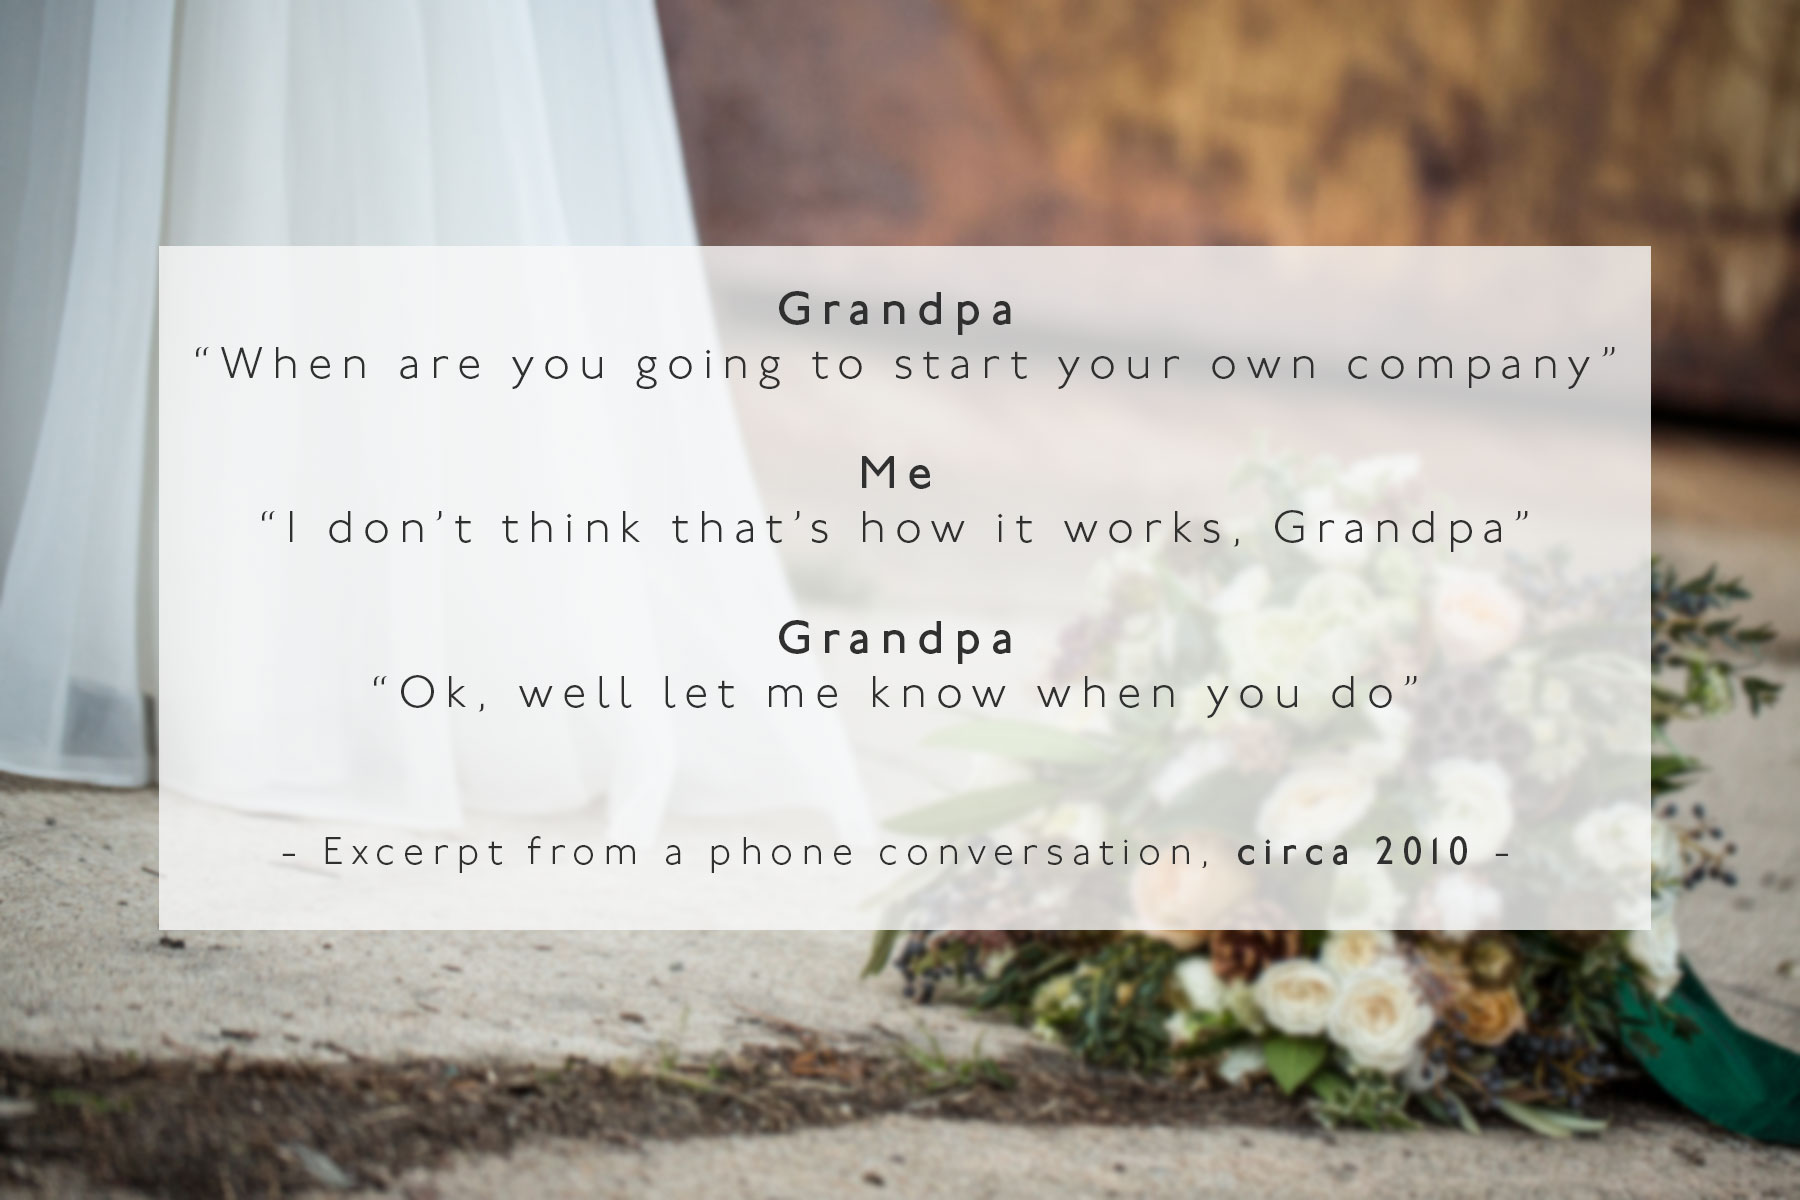 Grandpa: When are you going to start your own business Me: I don't think it works like that Grandpa: Ok well just let me know when you do